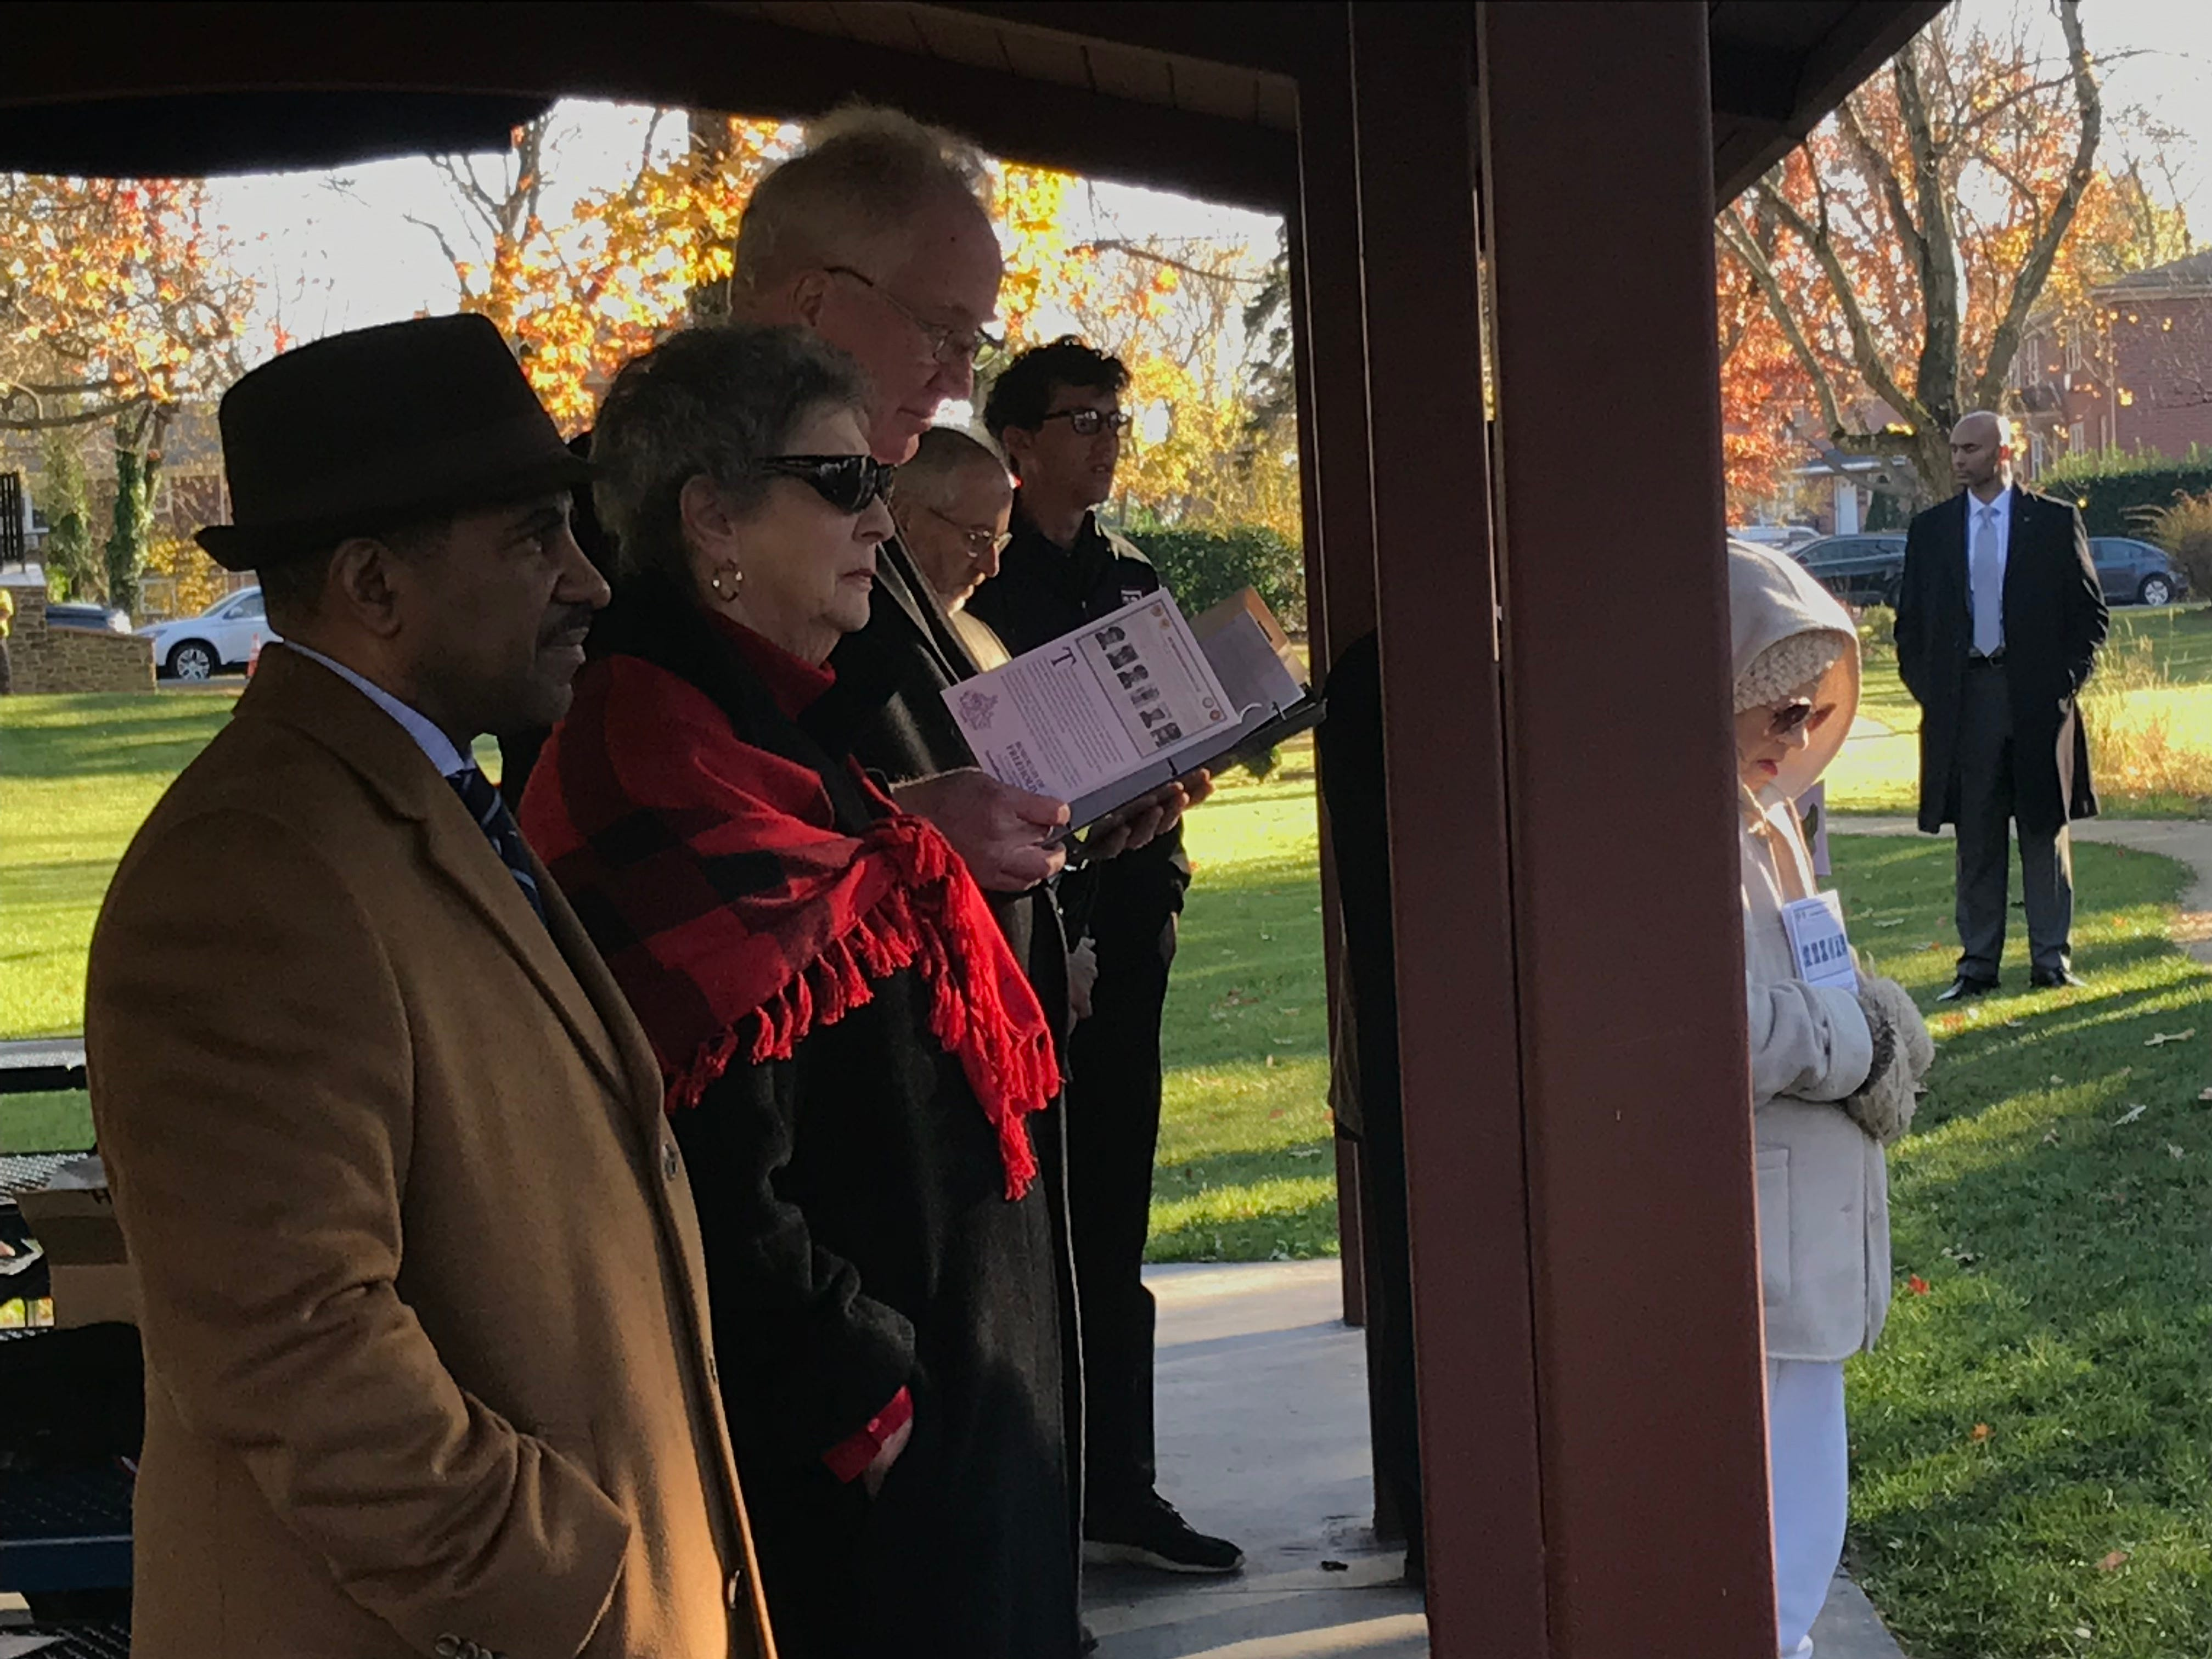 From left, the Rev. Ronald Sparks, councilwoman Sharon Shutzer, mayor J. Nolans Higgin, town historian Kevin Coyne and youth government alumnus Ricky Coyne watch as public officials deliver remarks during the re-dedication ceremony for Freehold's six Lewis brothers who served in World War II.